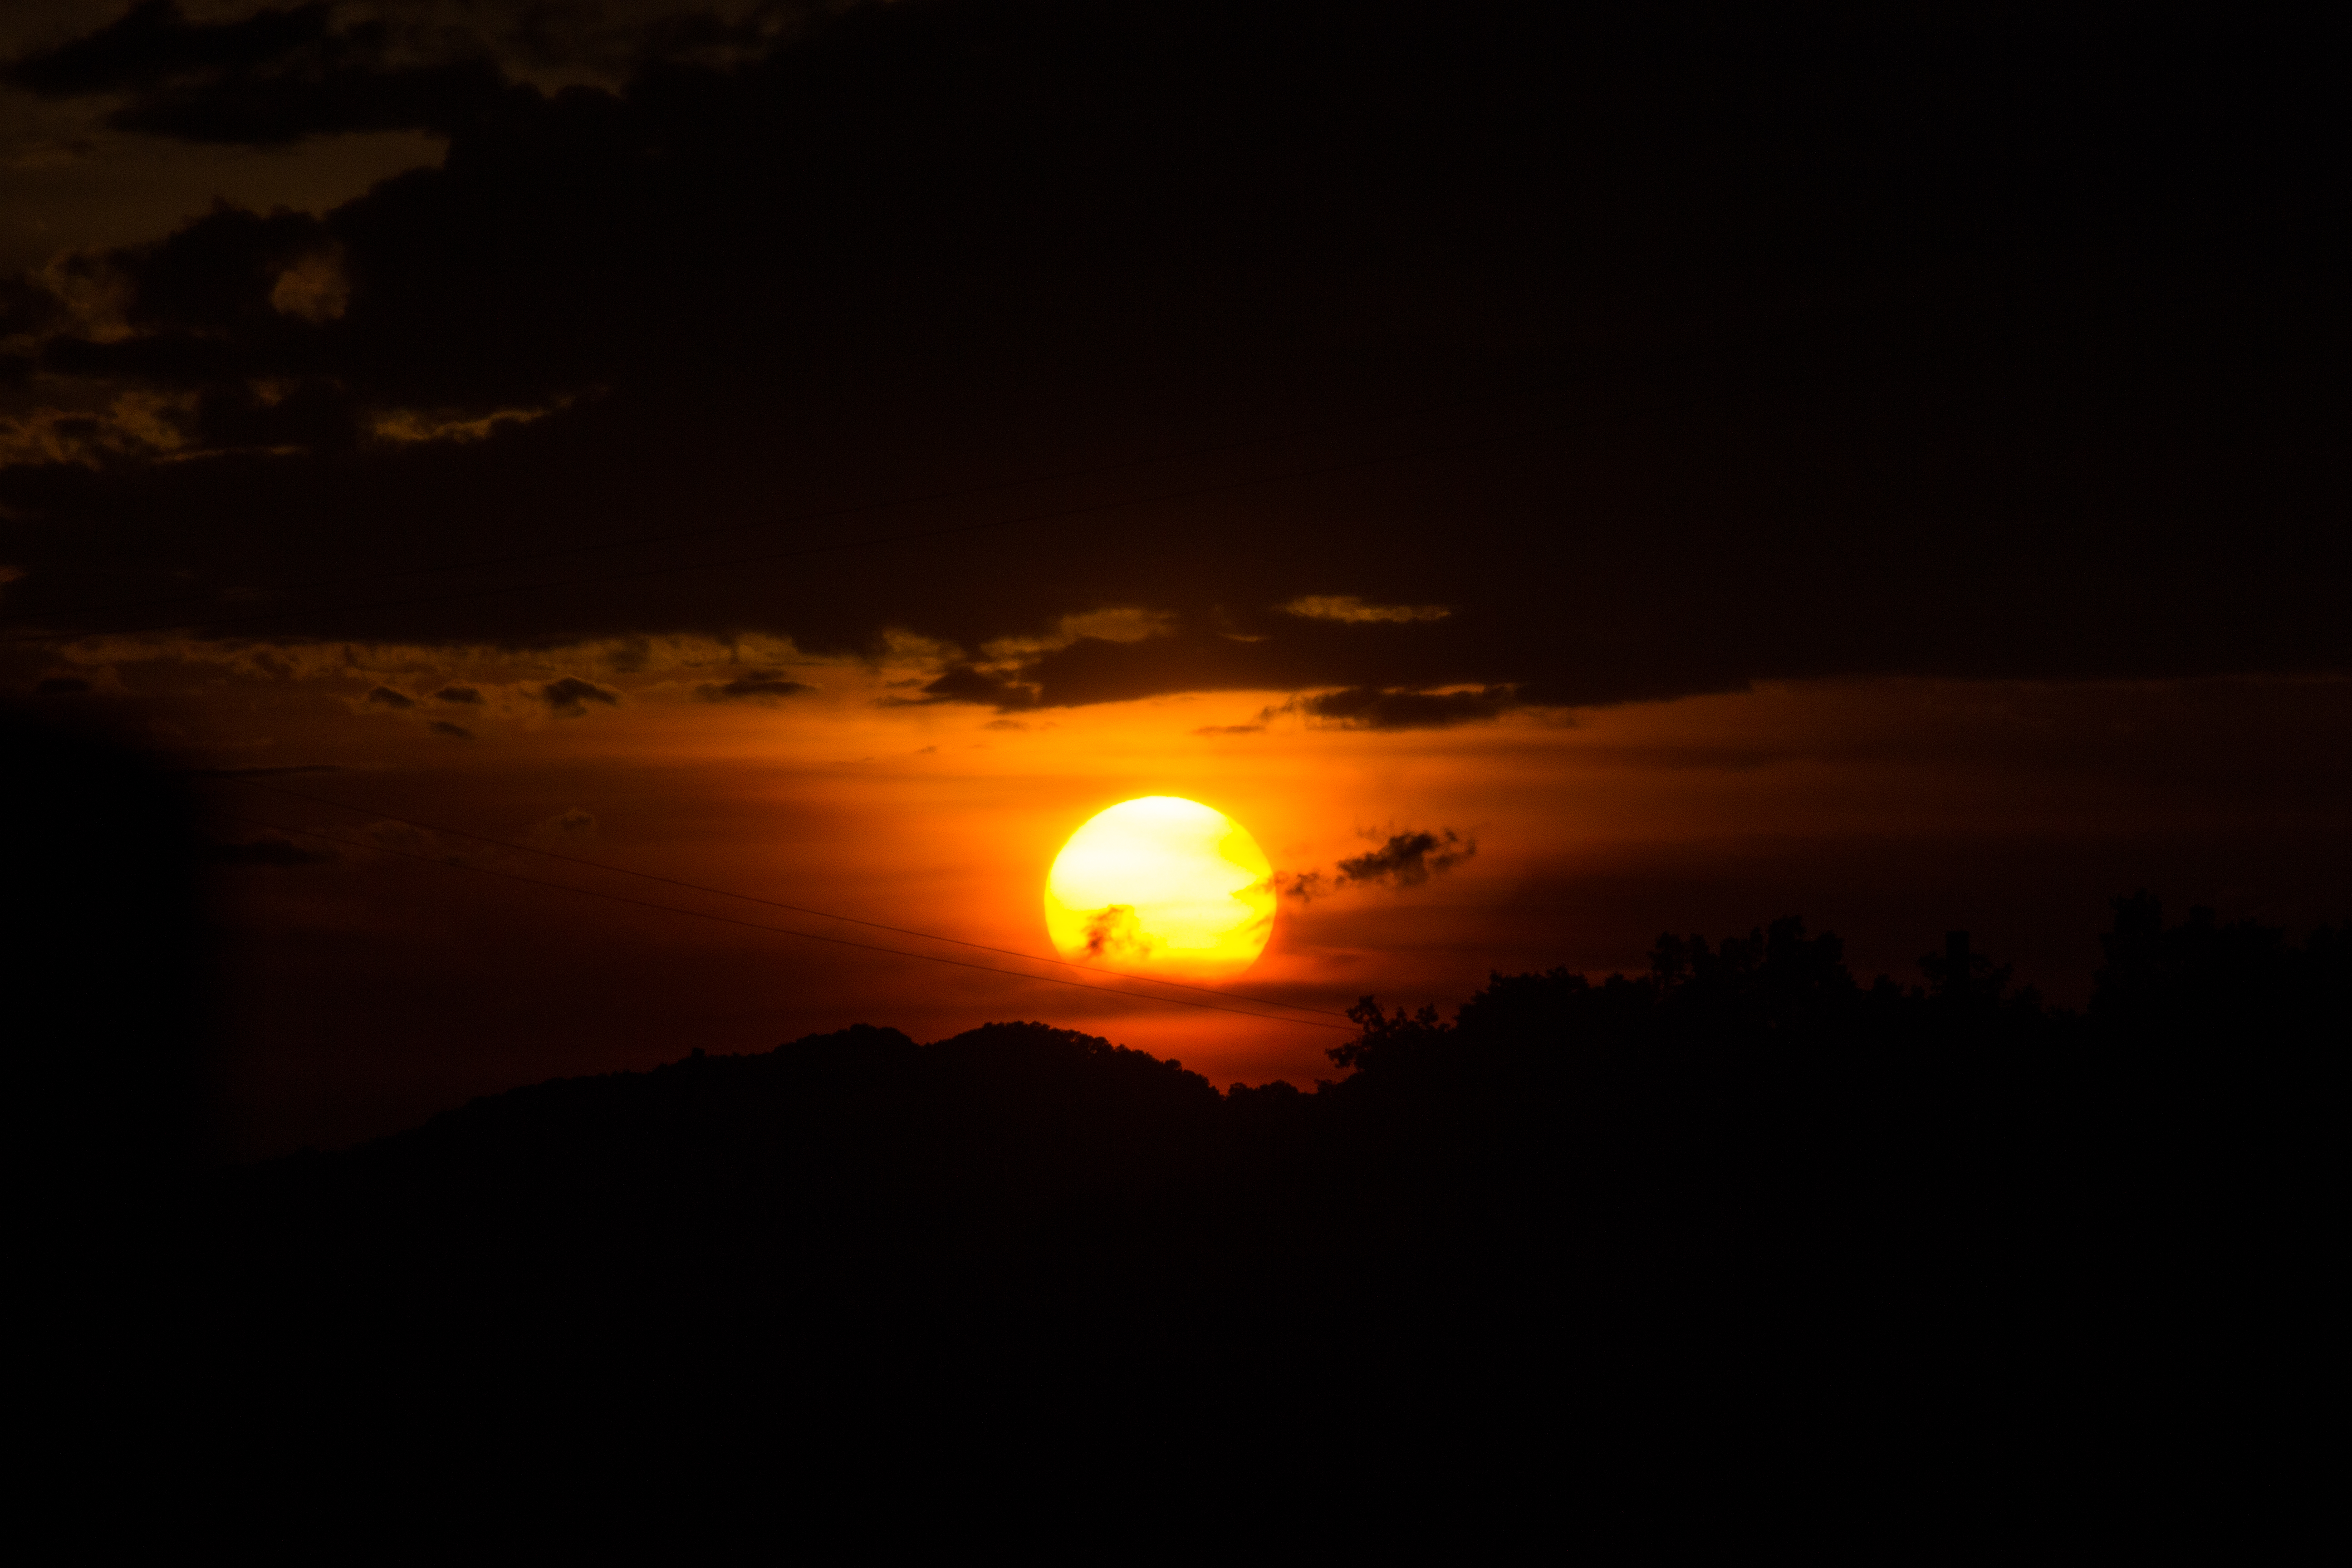 134745 download wallpaper Nature, Sunset, Hills, Sky, Sun screensavers and pictures for free